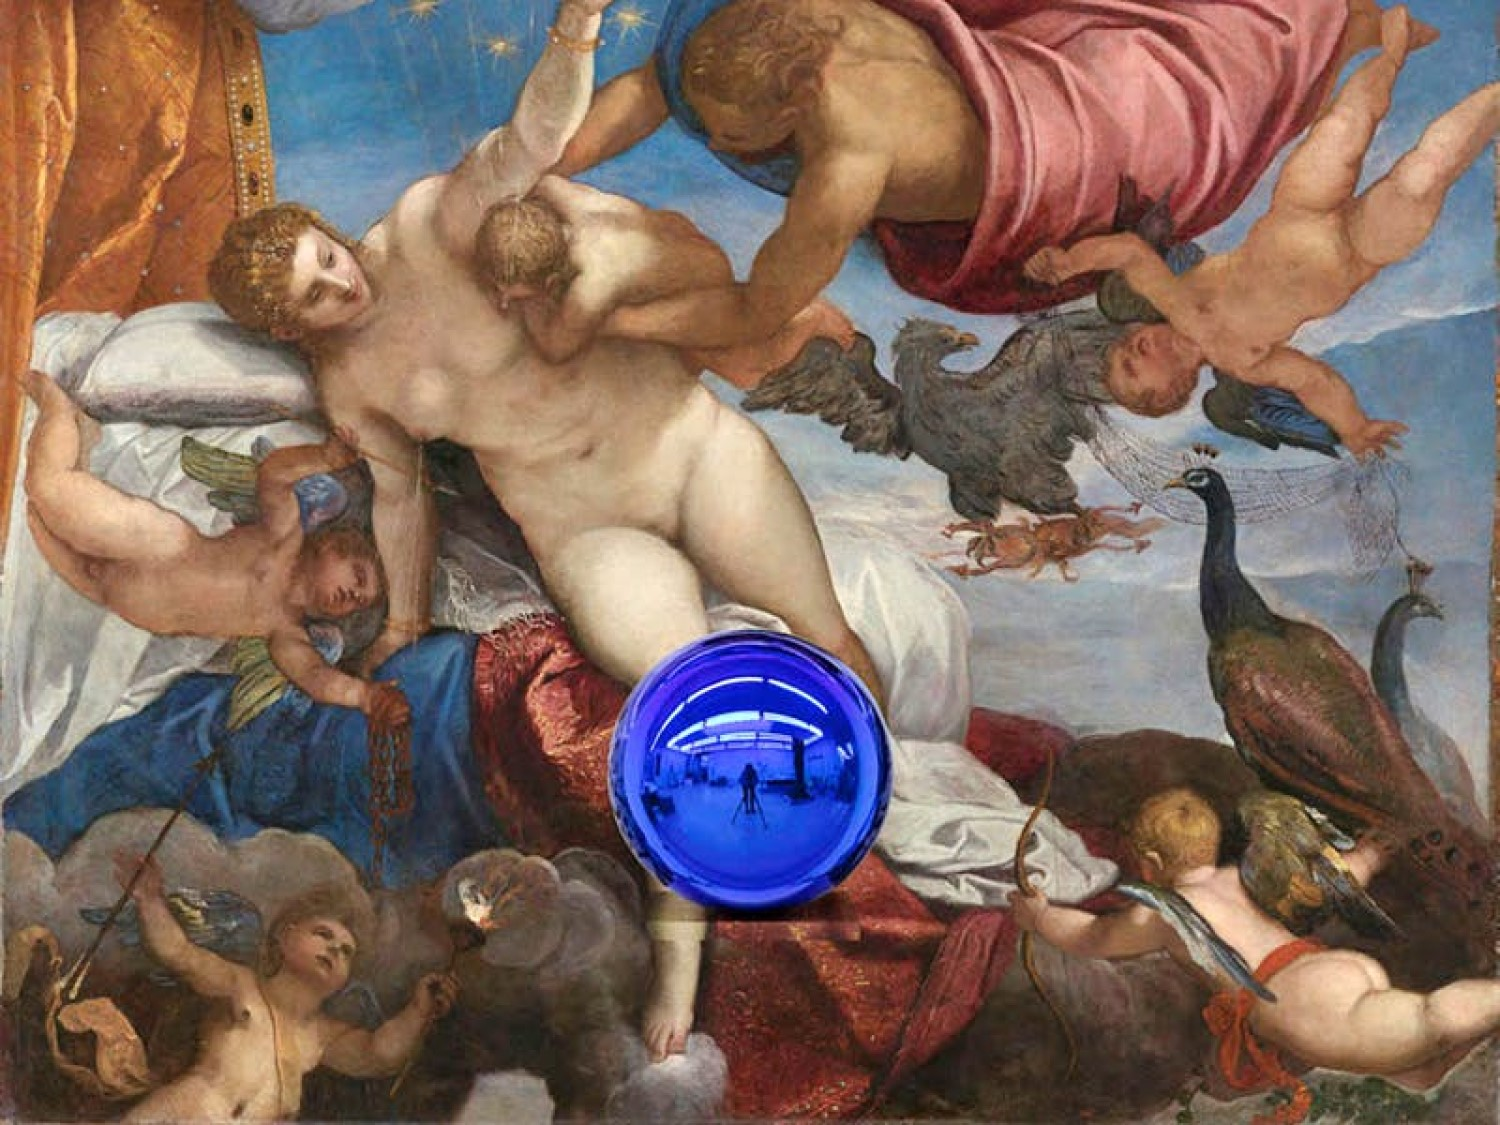 Gazing Ball (Tintoretto The Origin of the Milky Way) (2016), Jeff Koons. © Jeff Koons - Courtesy of the artist and Almine Rech Gallery